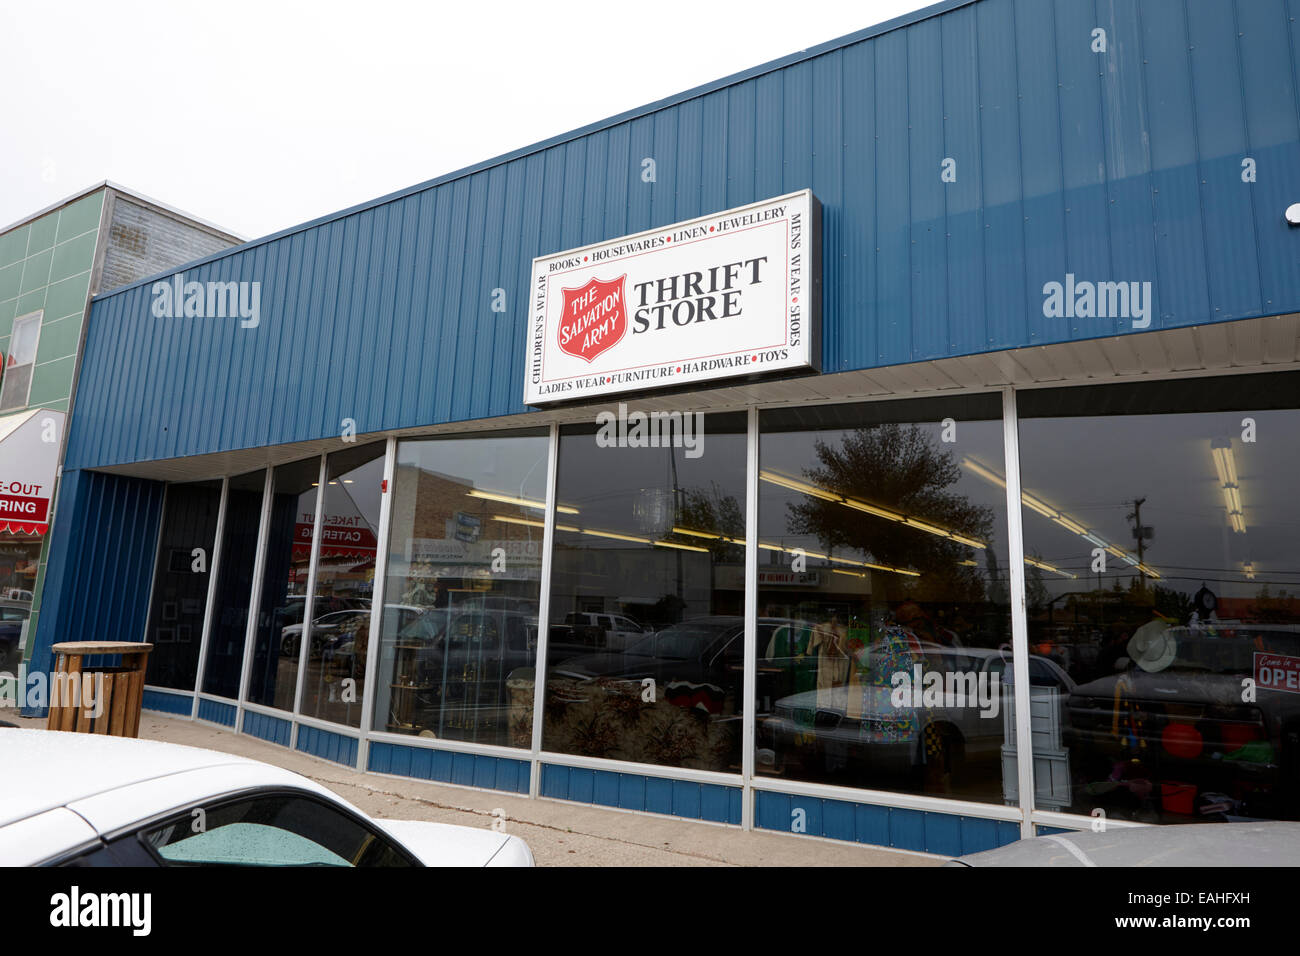 the salvation army thrift store on first street assiniboia sk Canada - Stock Image